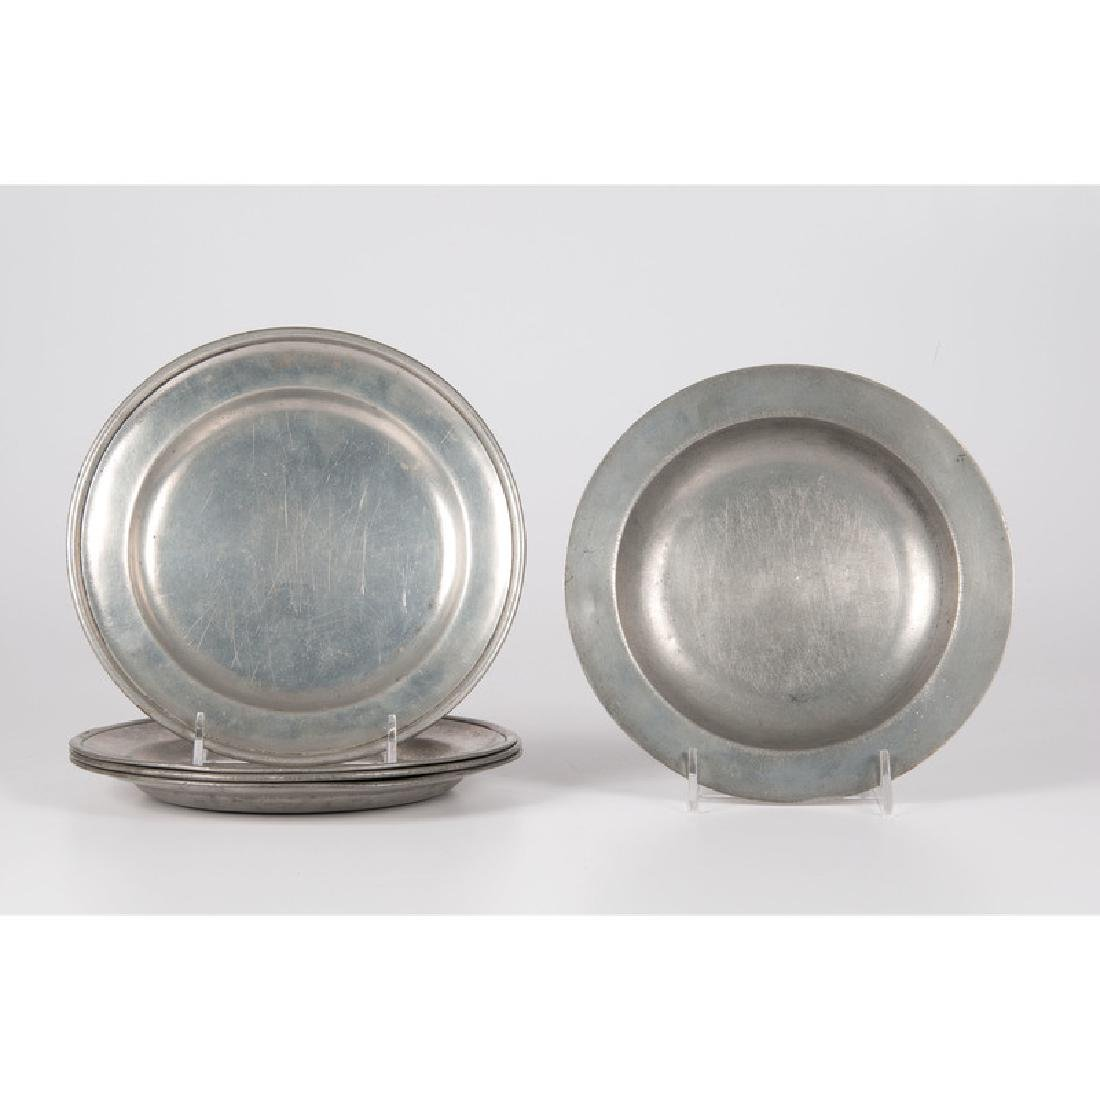 American and Scottish Pewter Plates